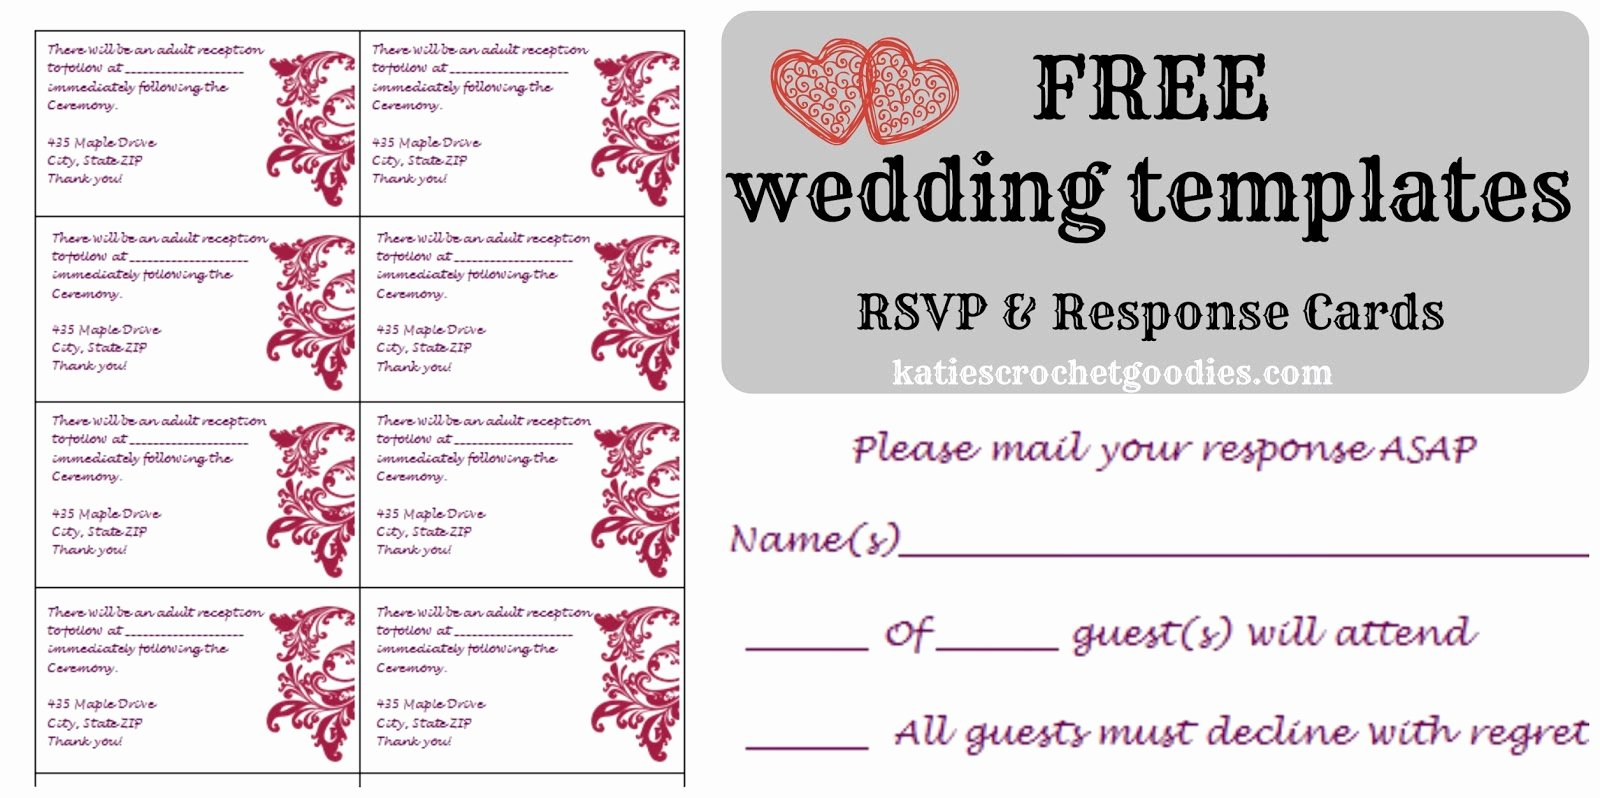 Rsvp Card Template Free New Free Wedding Templates Rsvp & Reception Cards Katie S